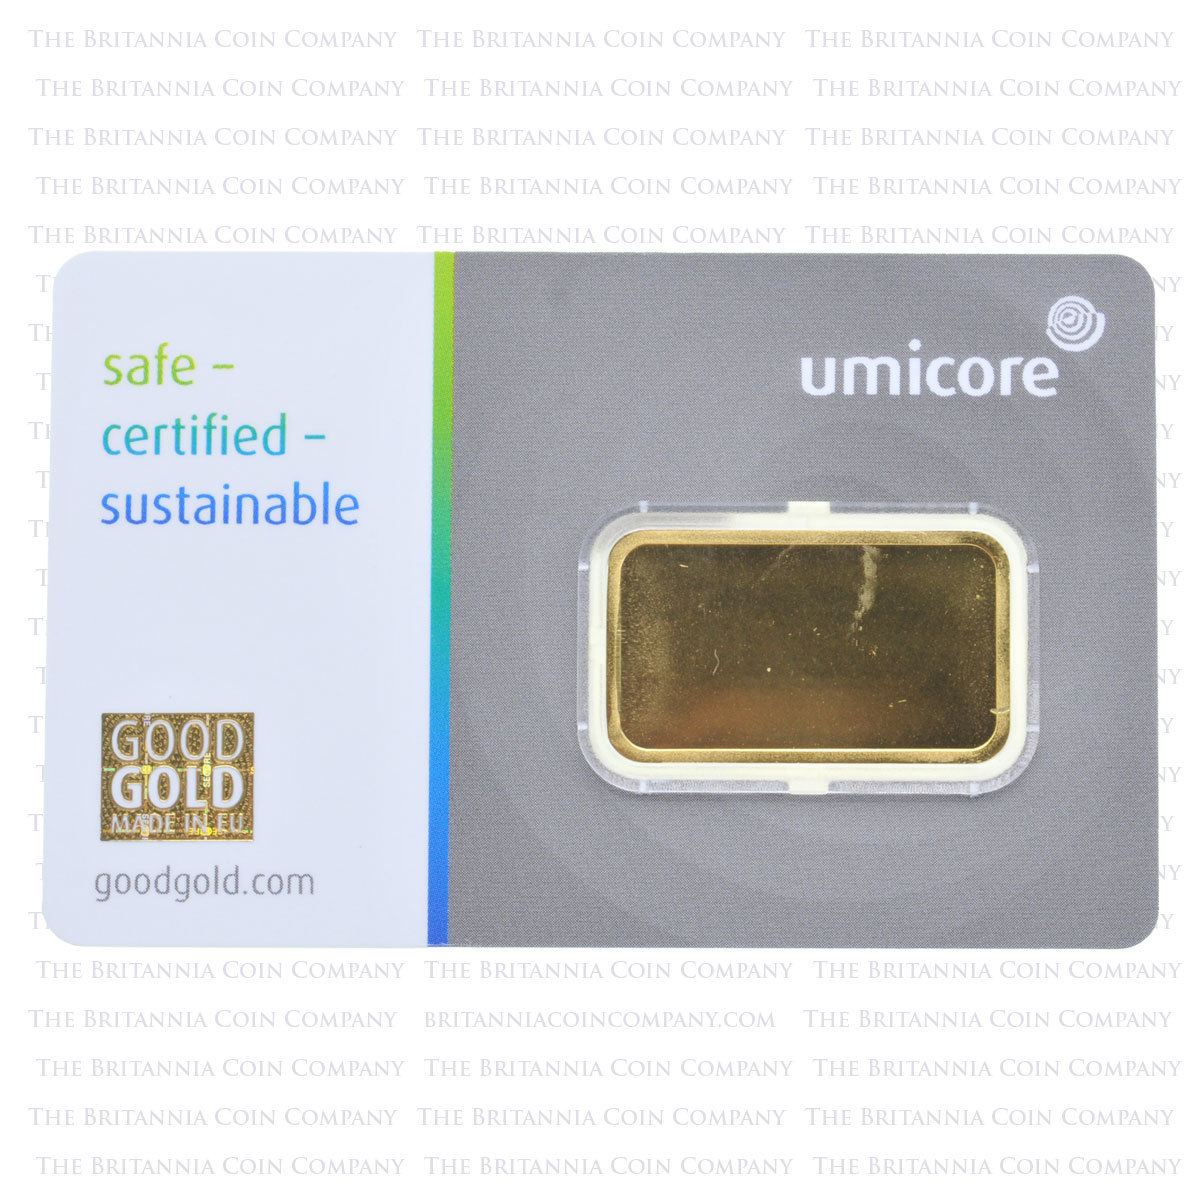 Umicore 10g Gold Bar